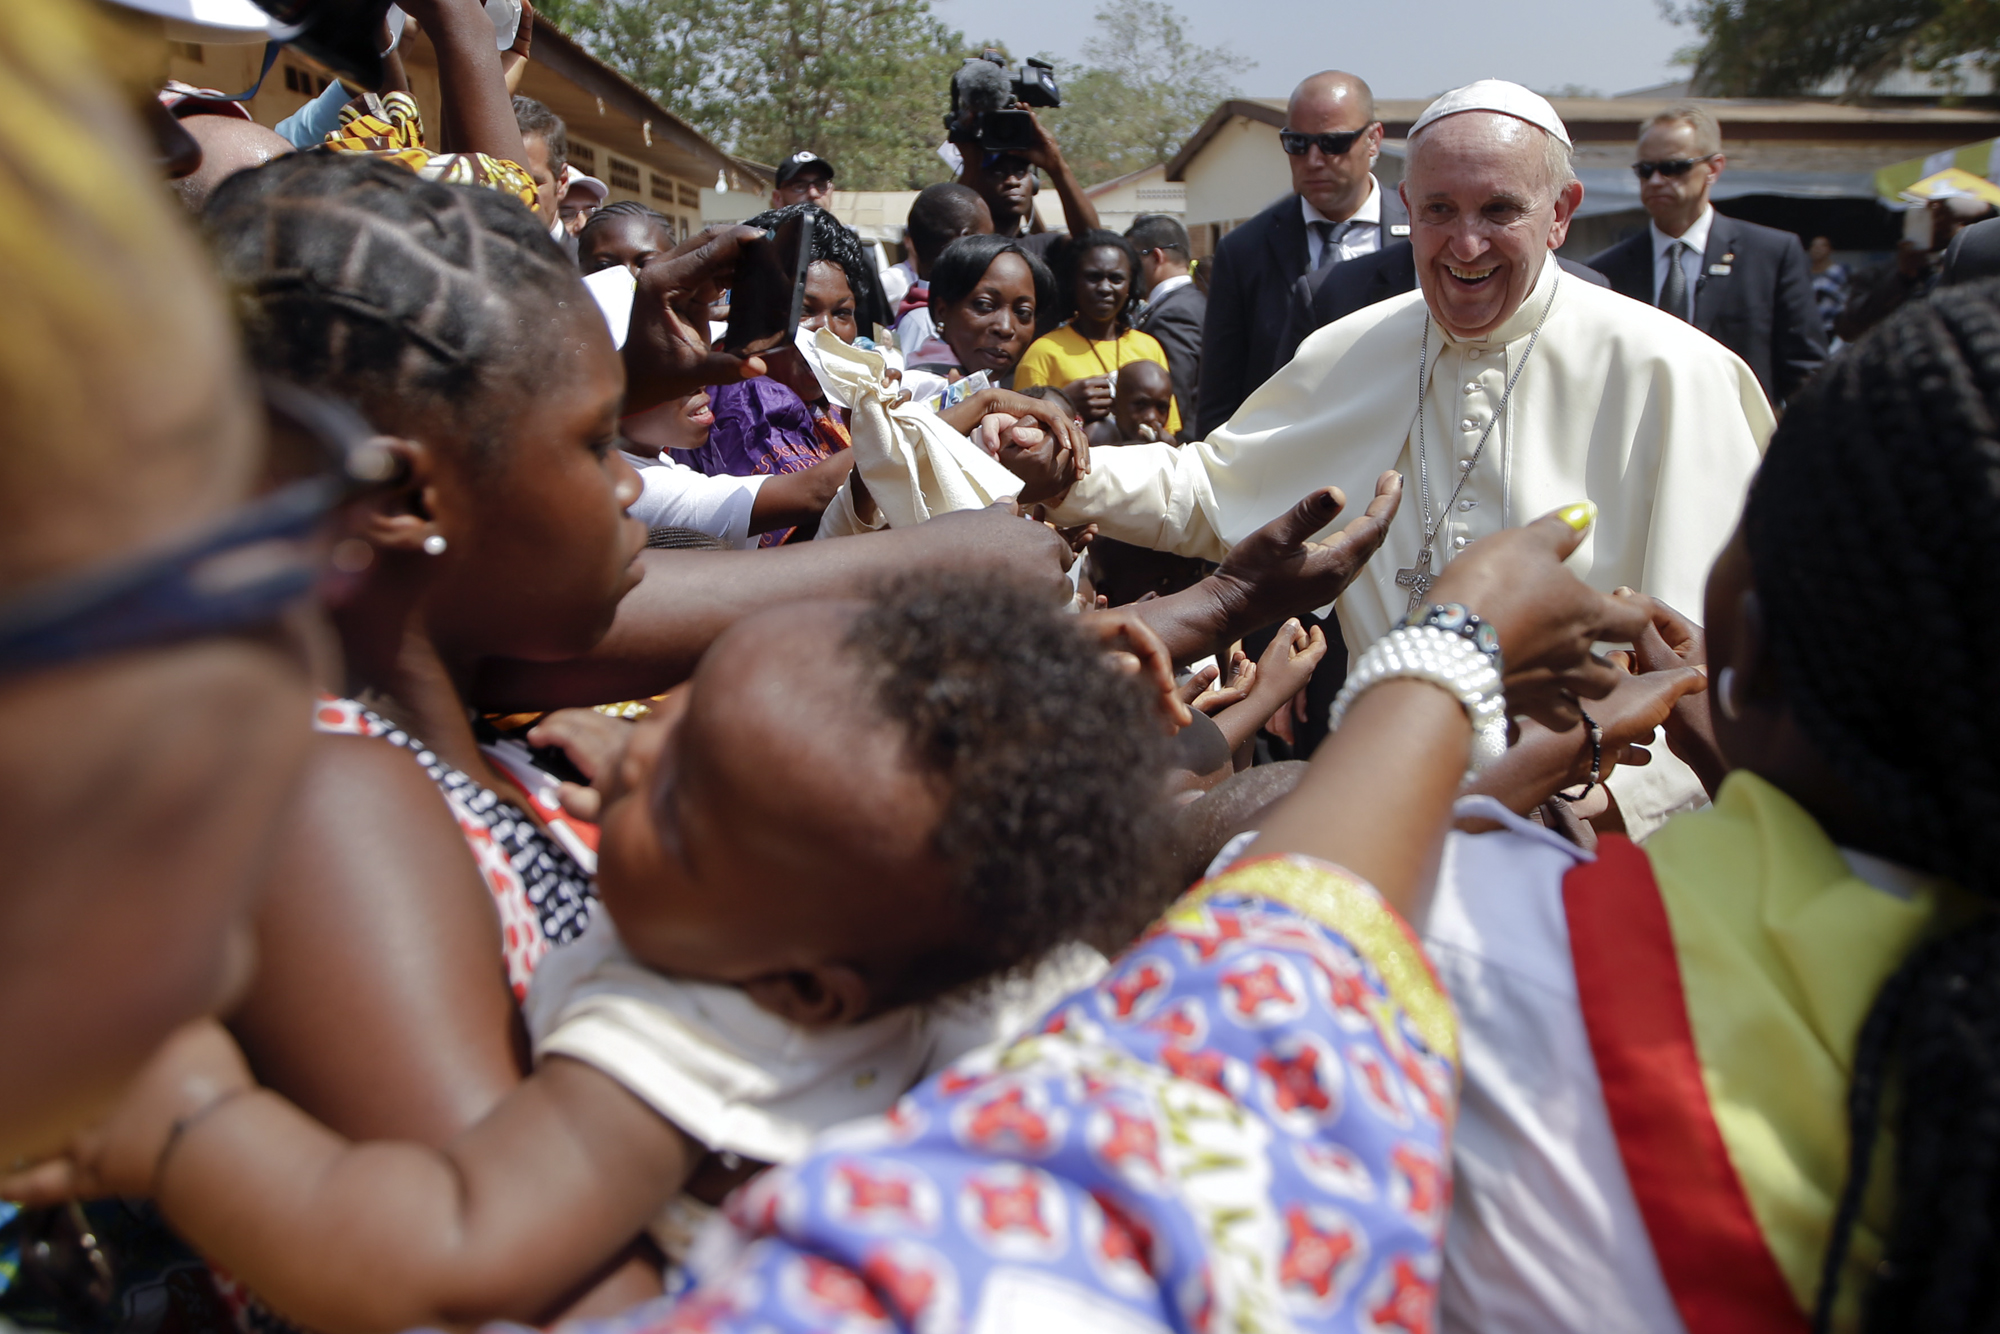 Pope Francis is cheered by locals as he visits a refugee camp, in Bangui, Central African Republic, Nov. 29, 2015.